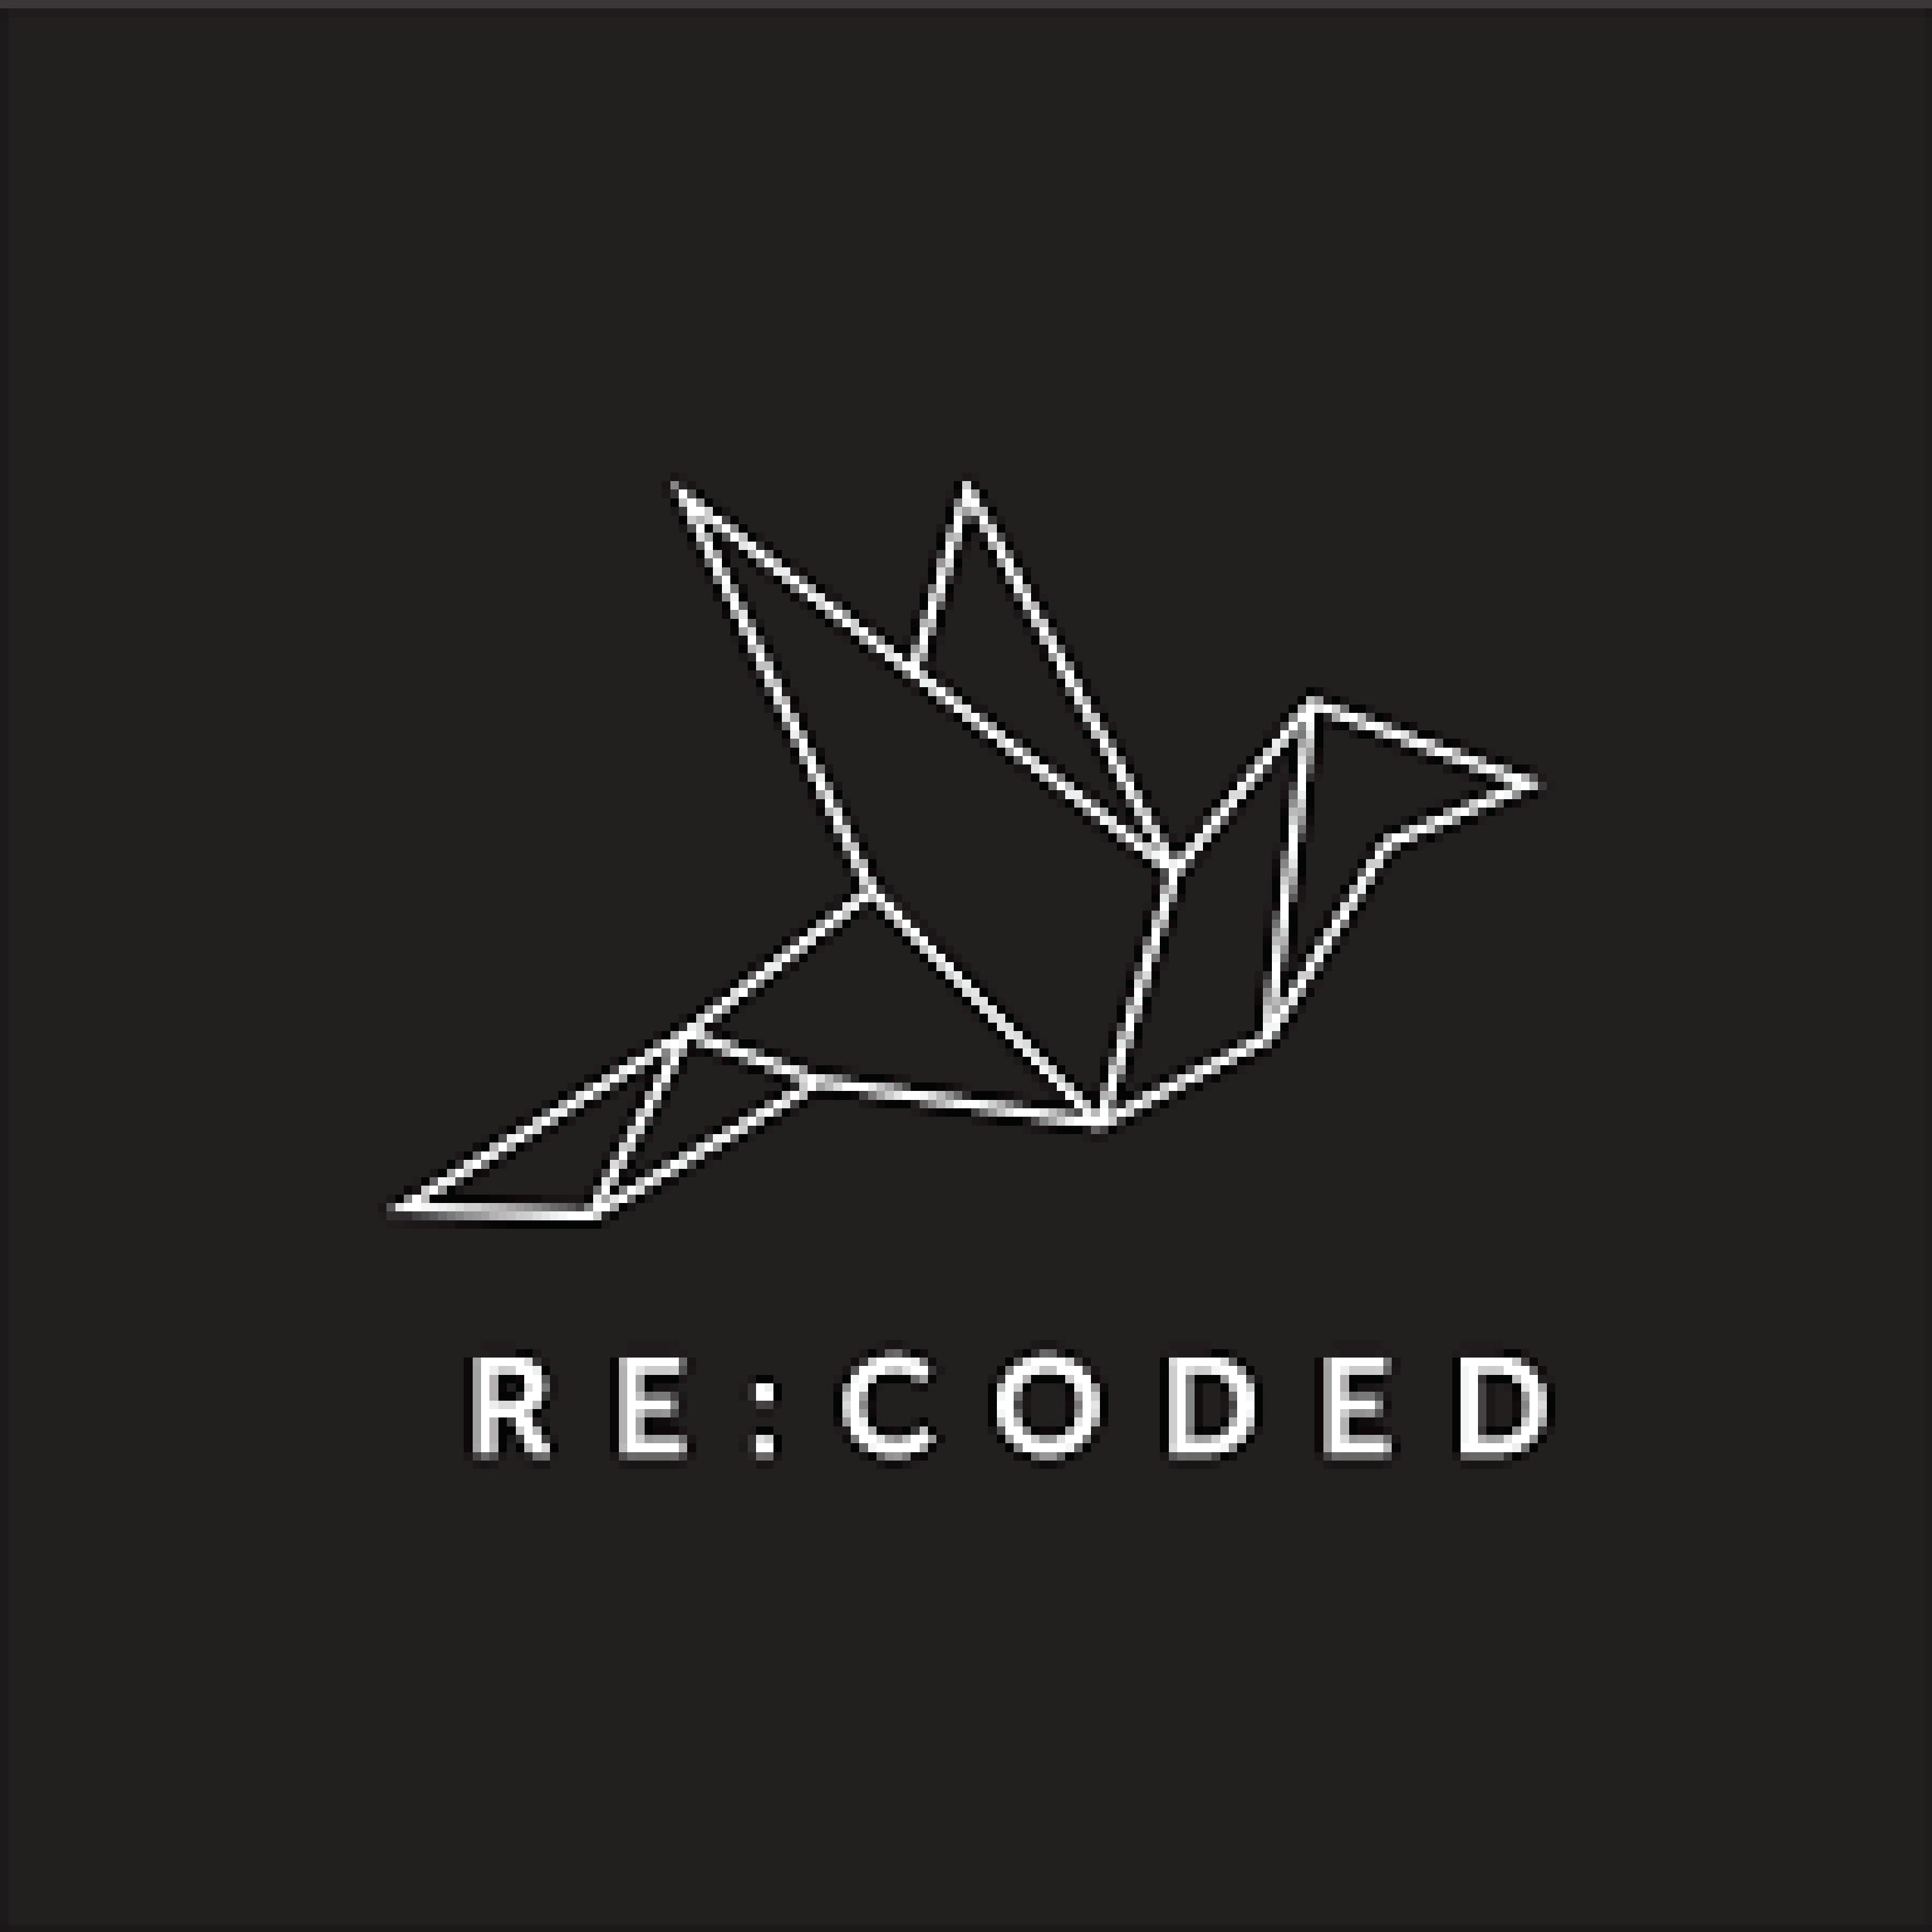 RE : CODED